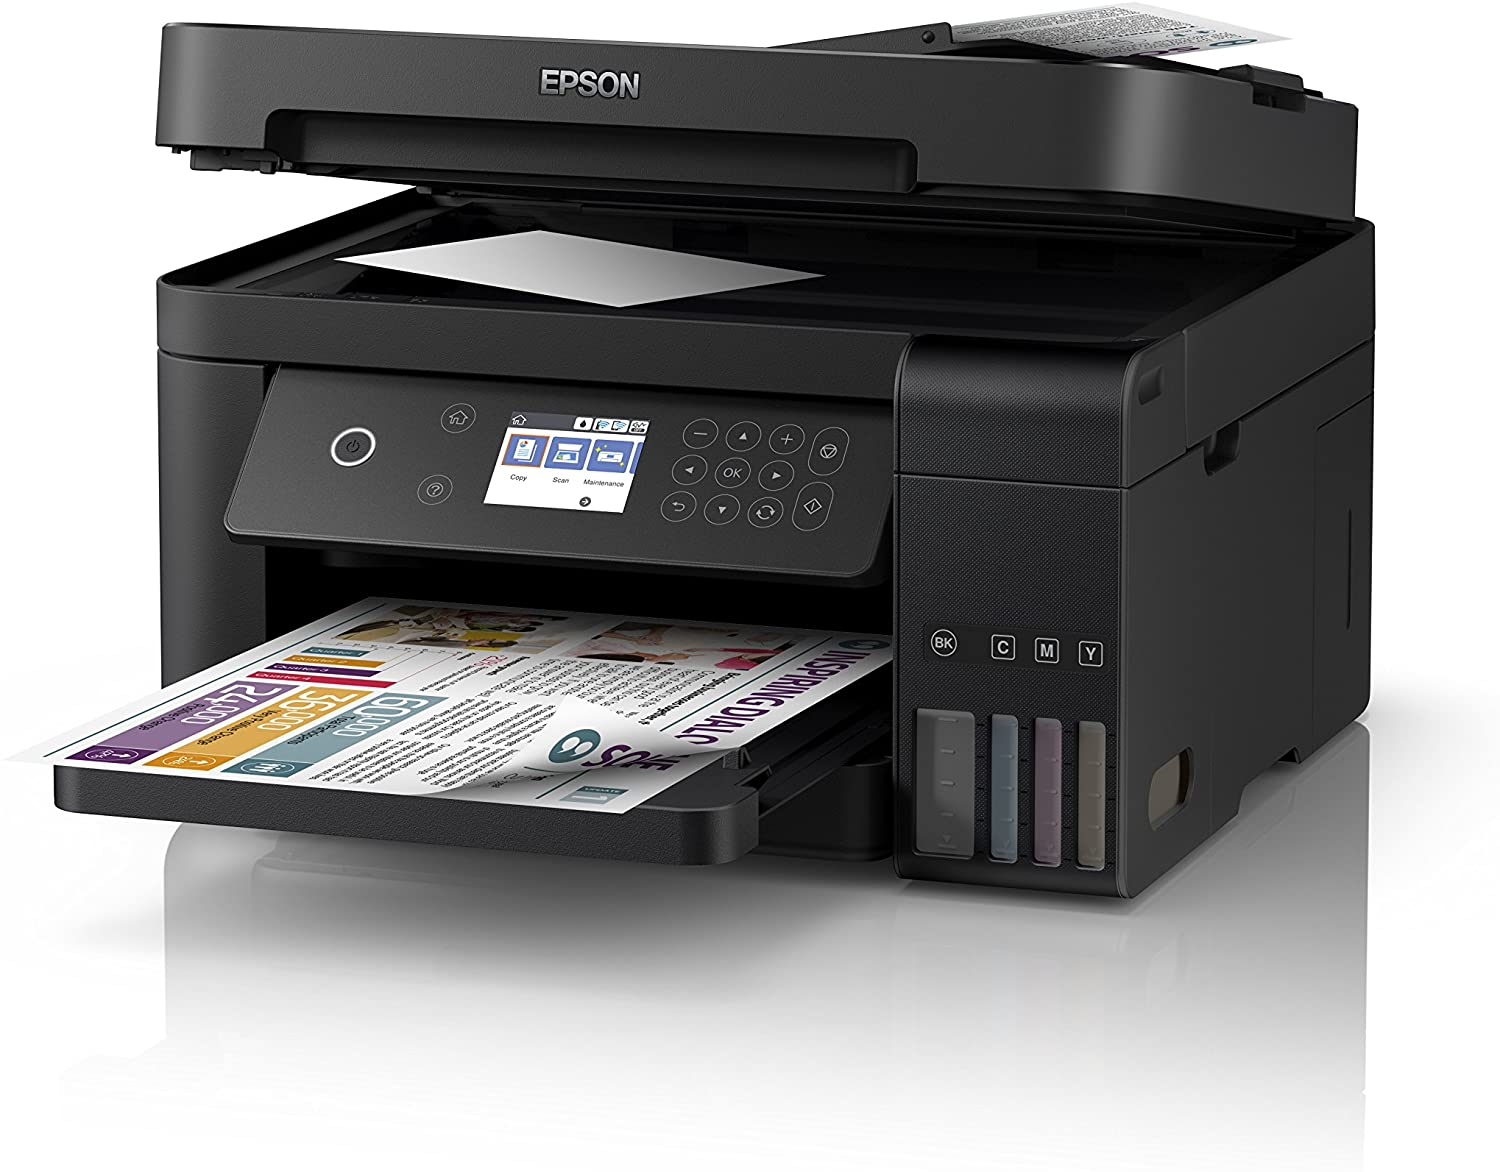 Epson EcoTank ET-3750 A4 Print Scan Copy Wi-Fi Printer uk reviews